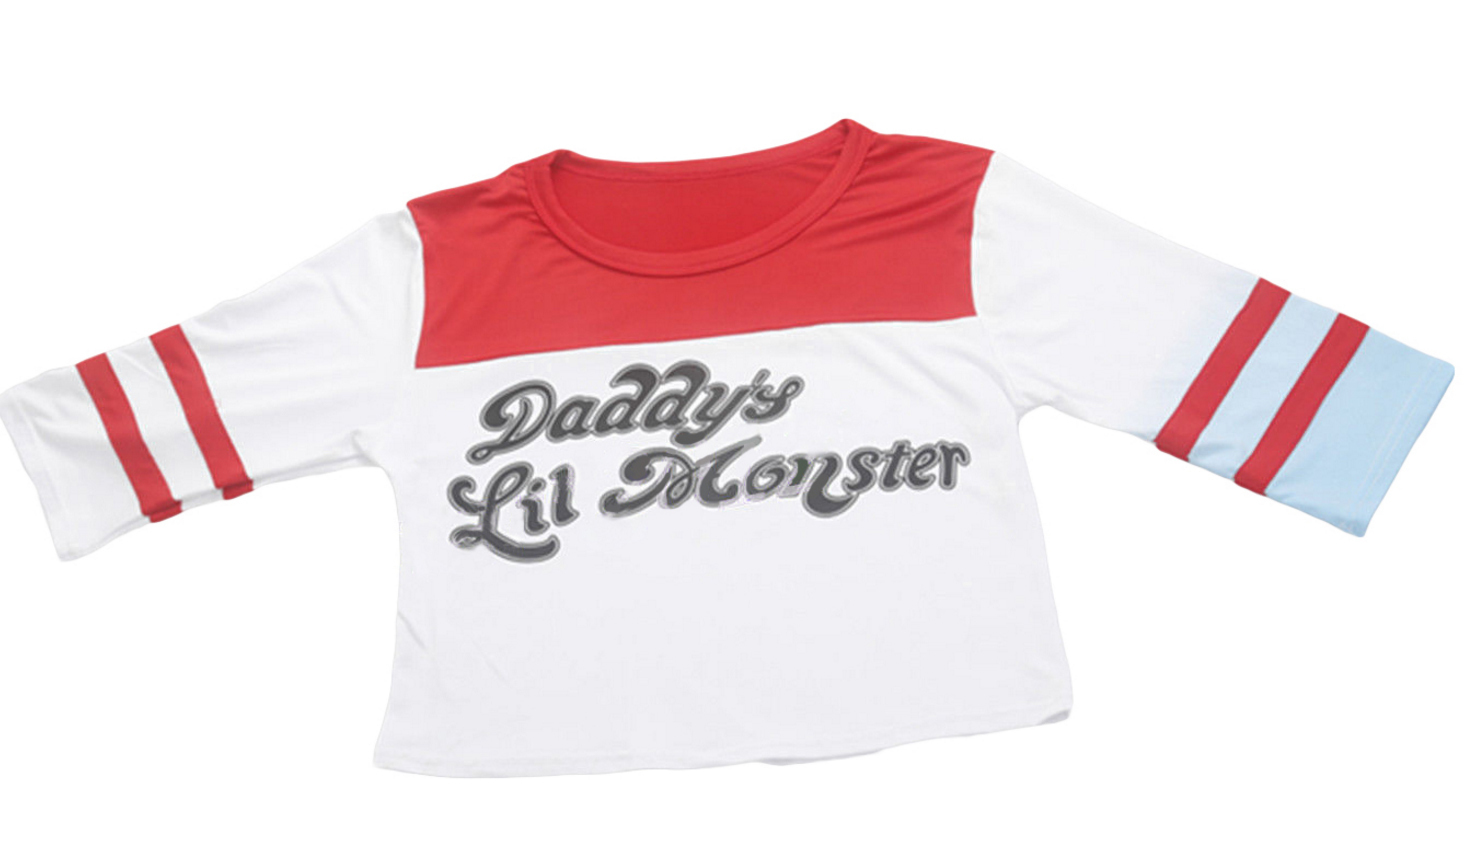 Shirt Suicide Monster T Quinn Lil Daddy's Harley Squad Oknw80PX